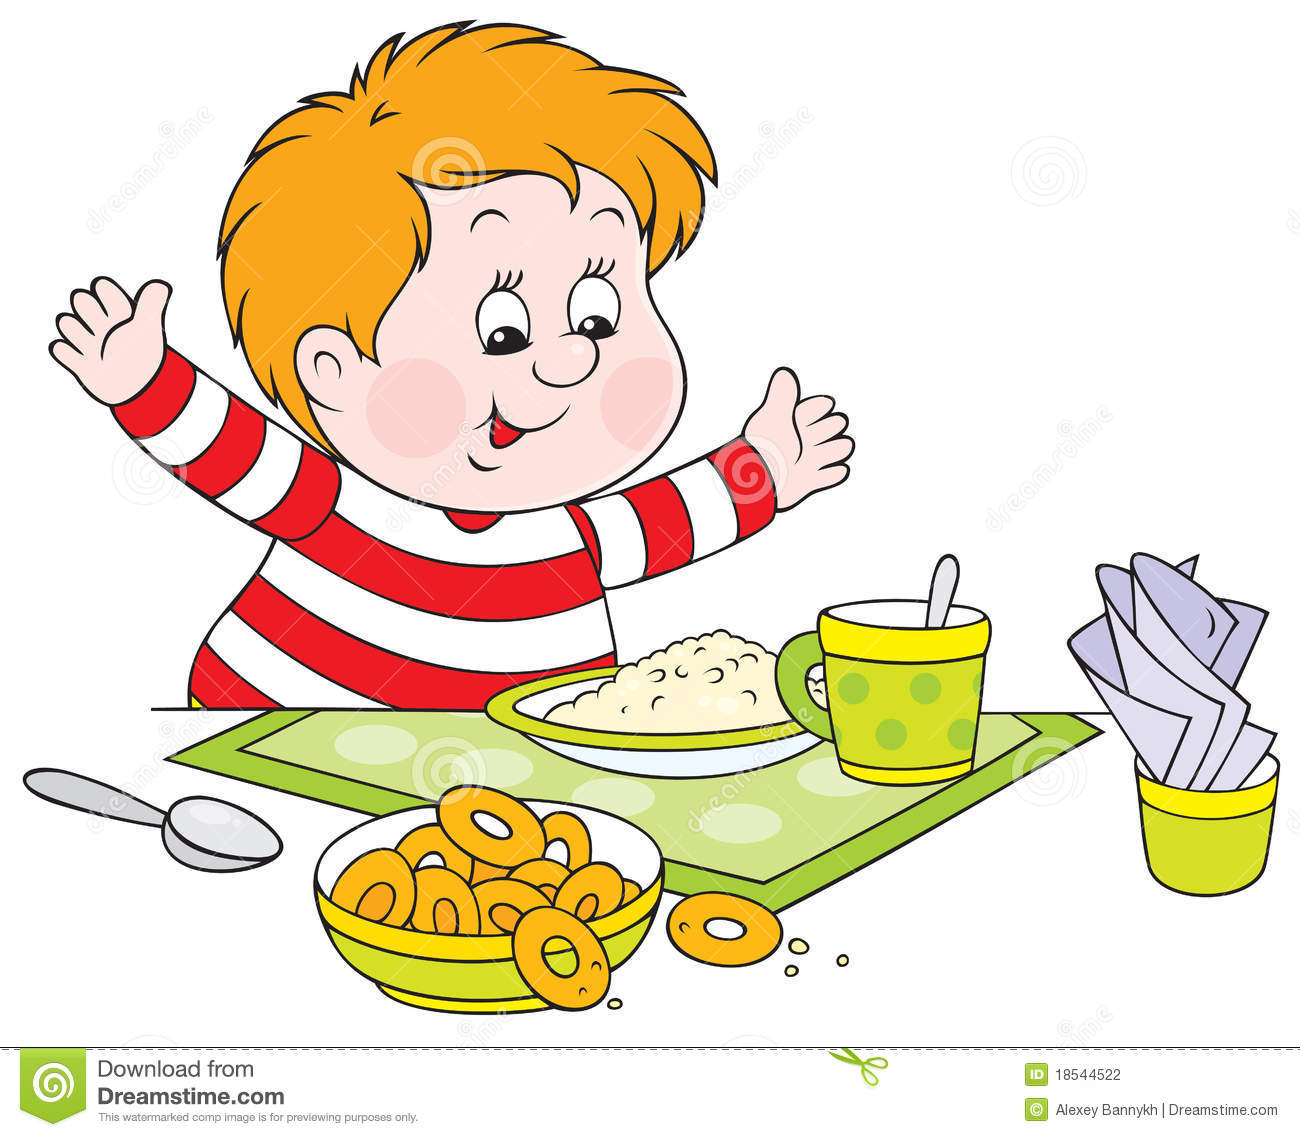 Vector clip-art of a cheerful boy with fat cheeks at the dinner table.